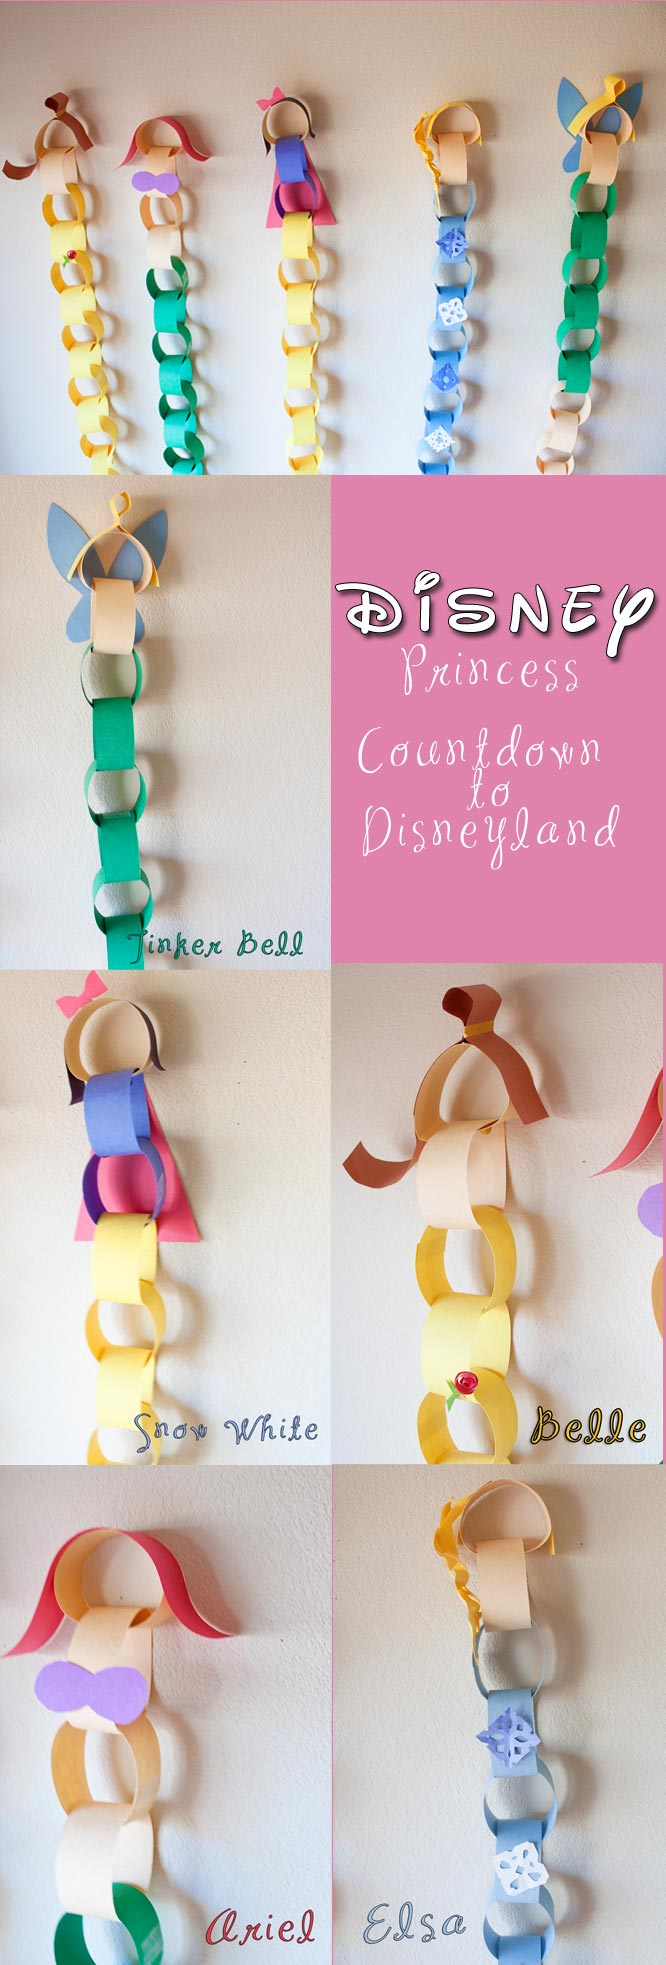 Disney Princess Countdown chain. Great kids craft for Disneyland trips